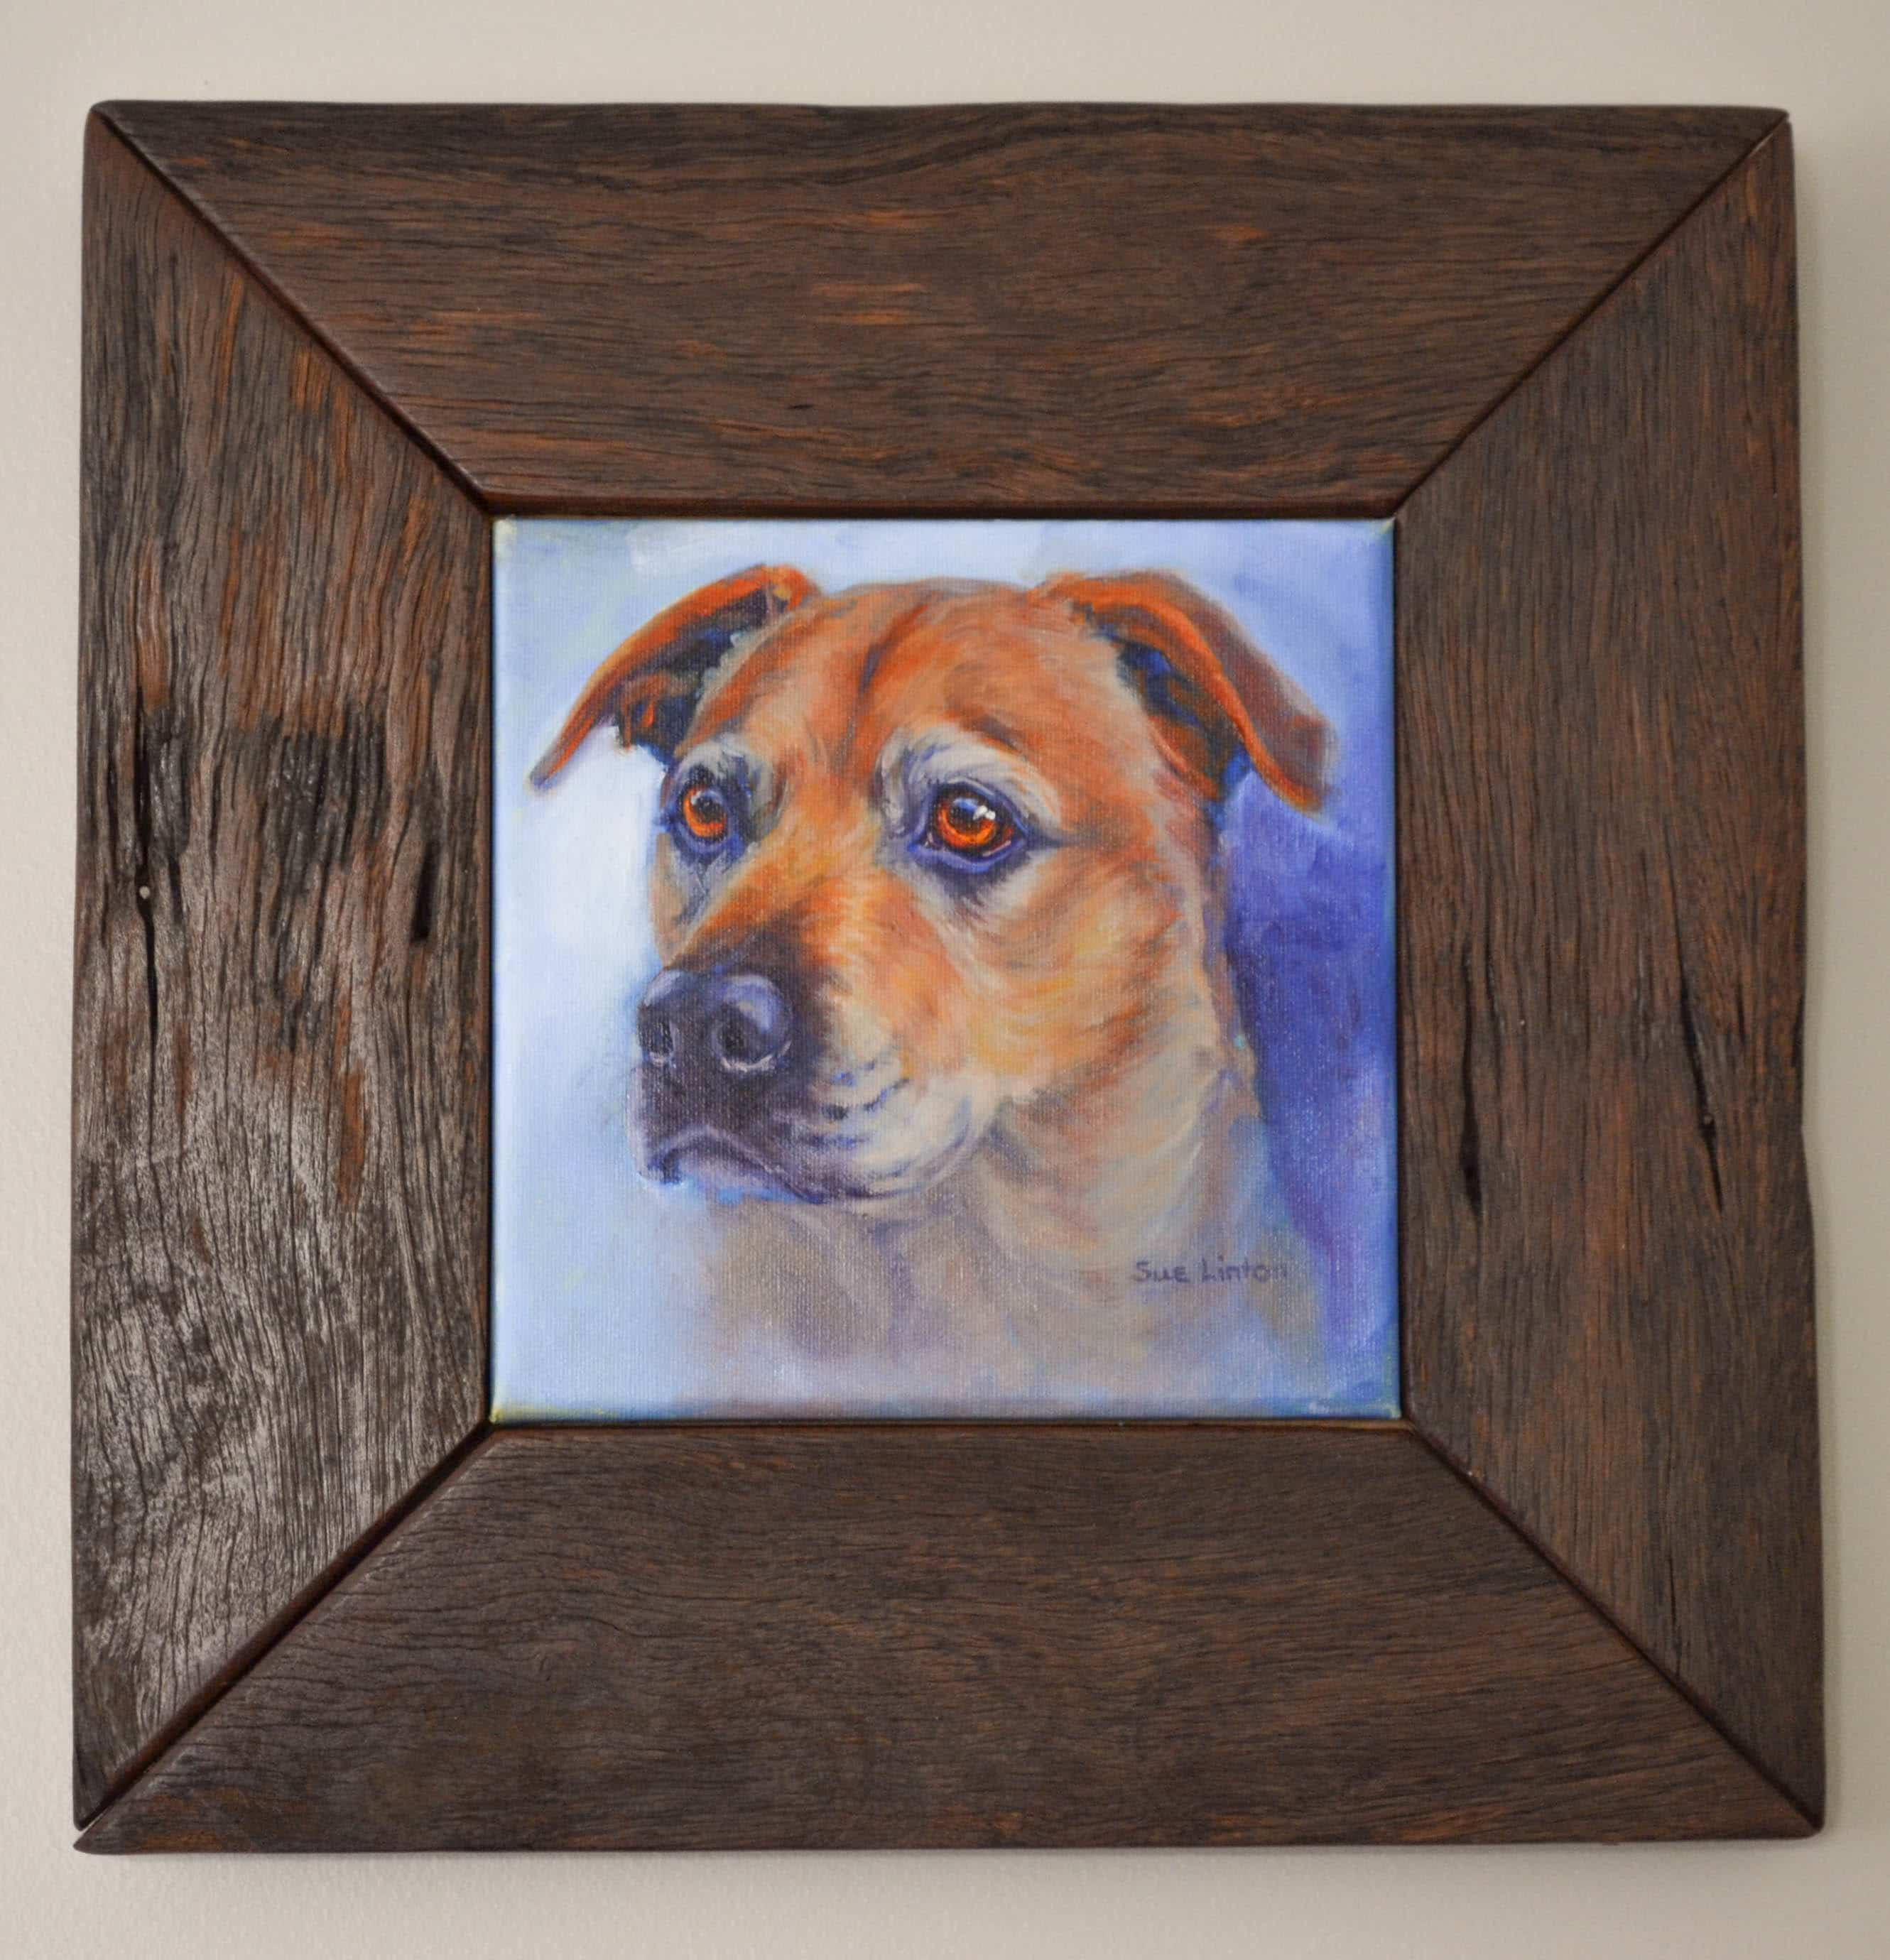 tahla framed 20 x 20cms oil